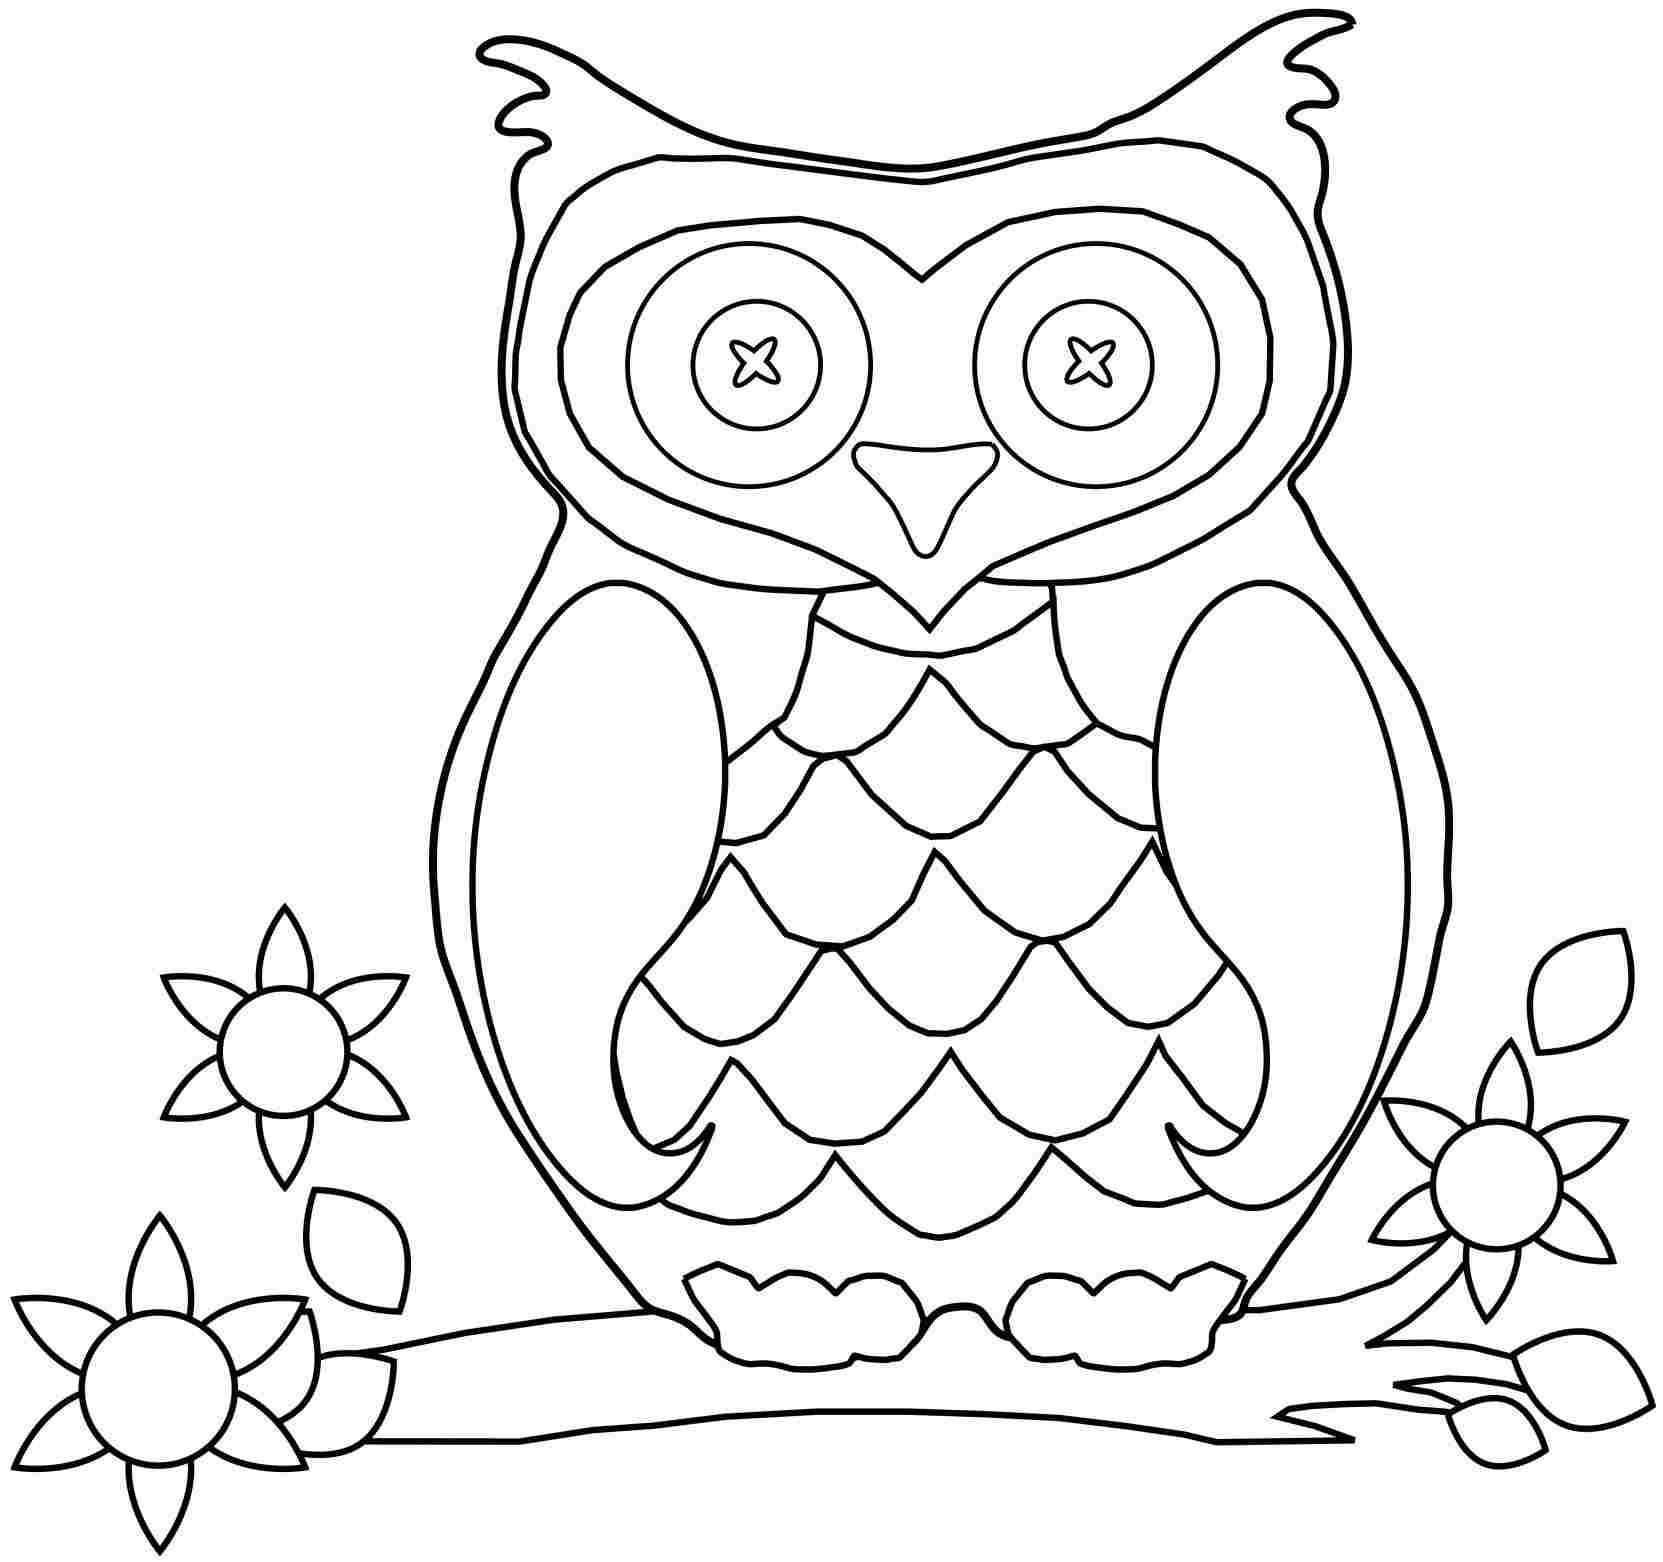 Cute Owl Coloring Pages To Print Cute Owl Coloring Pages. Kids ...